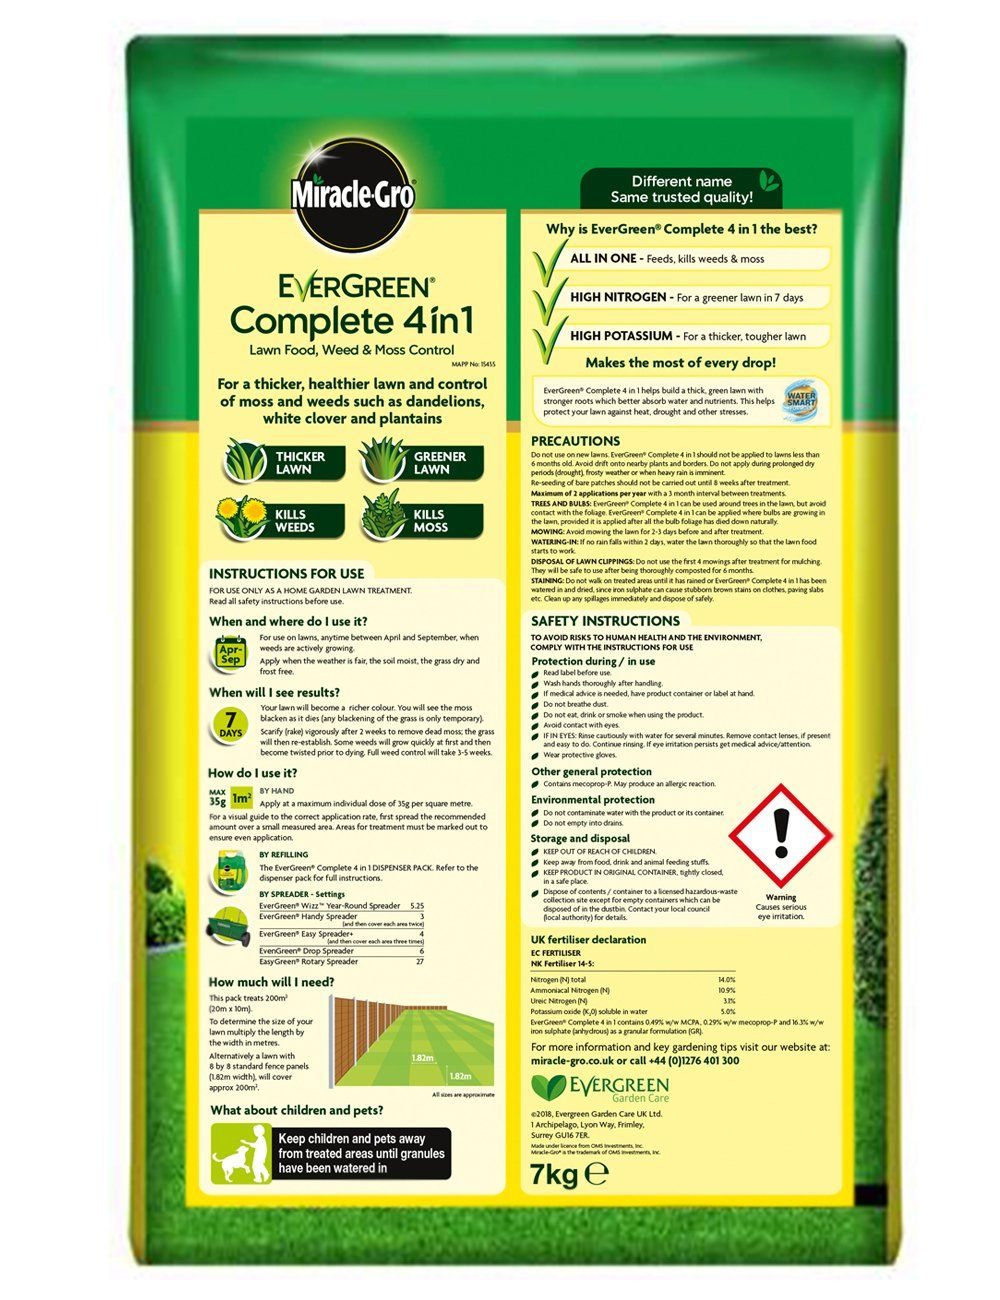 Is your lawn looking a little lacklustre? Help is at hand. Miracle-Gro's EverGreen Complete 4-in-1 lawn food will help you achieve a healthier, greener garden. It has a unique nitrogen formula that feeds your lawn while killing unwanted weeds like dandelions, white clover and moss. Greener lawn within 1 week. Feeds your lawn whilst also working to kill weeds and control moss. Application Advice: April - September. Application Method: Please see pack for details. Safety Information: Plea